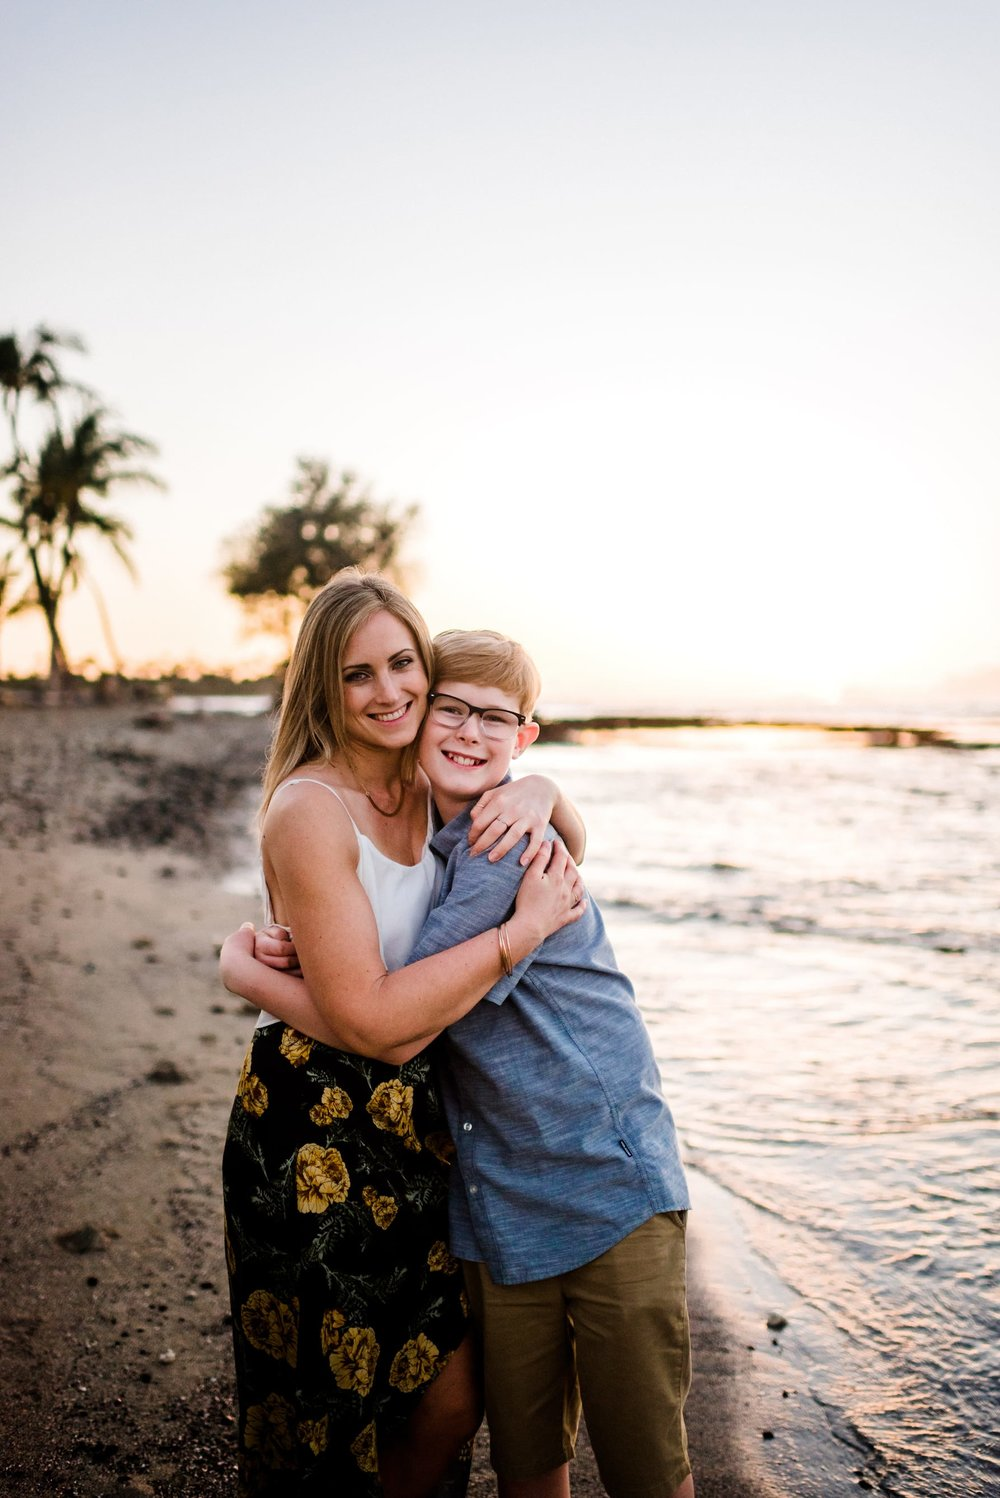 Mother-Son-Photo-Session-Hawaii-Sunset-10.jpg